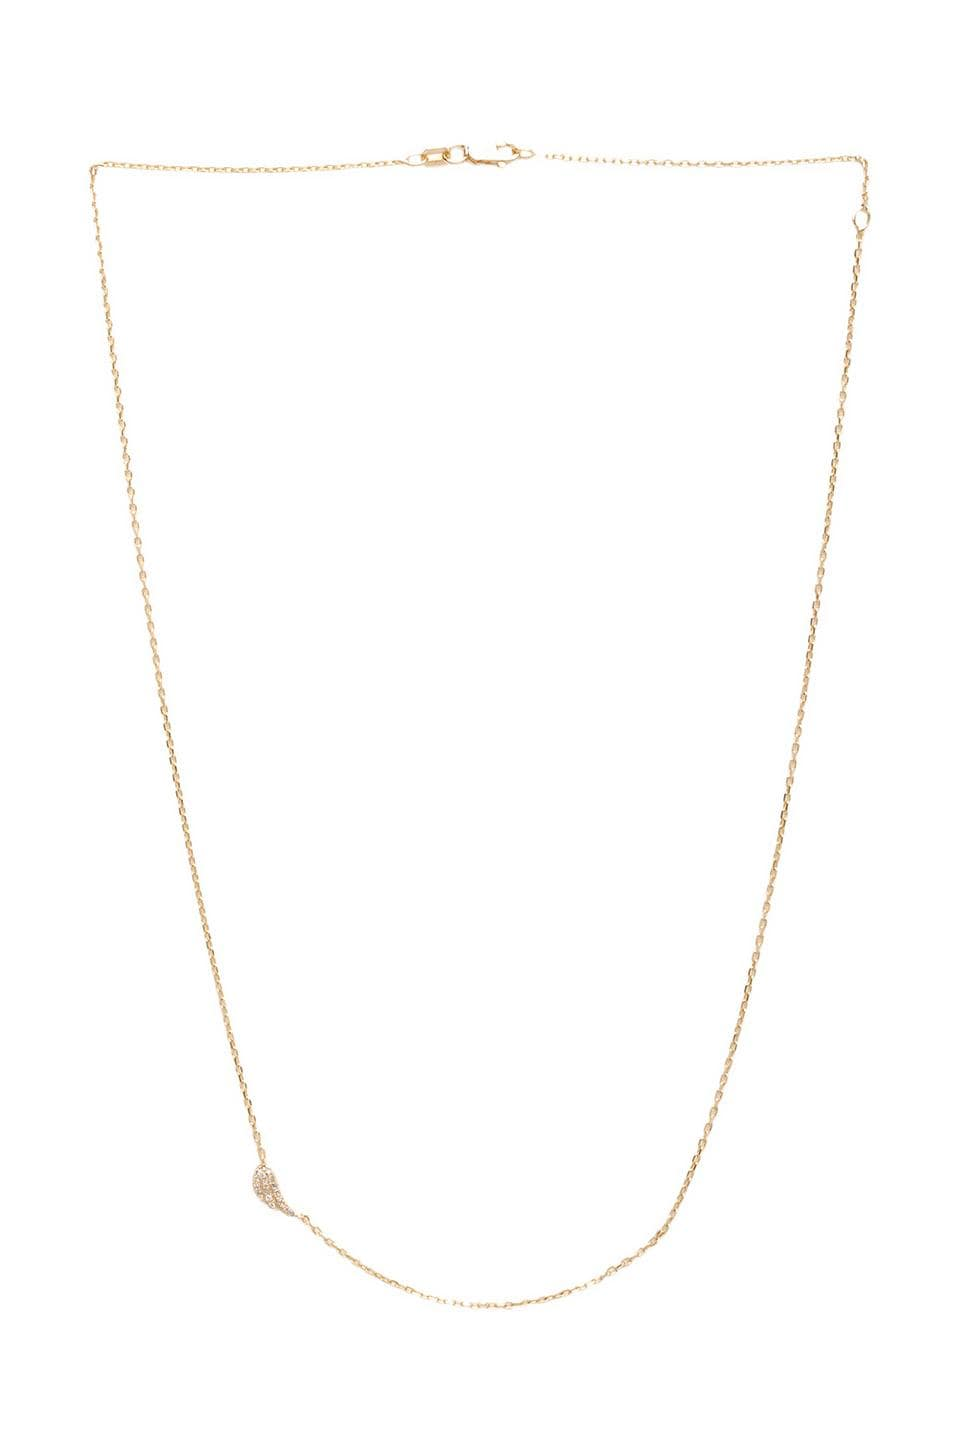 joolz by Martha Calvo Diamond Angel Wing Necklace in Gold